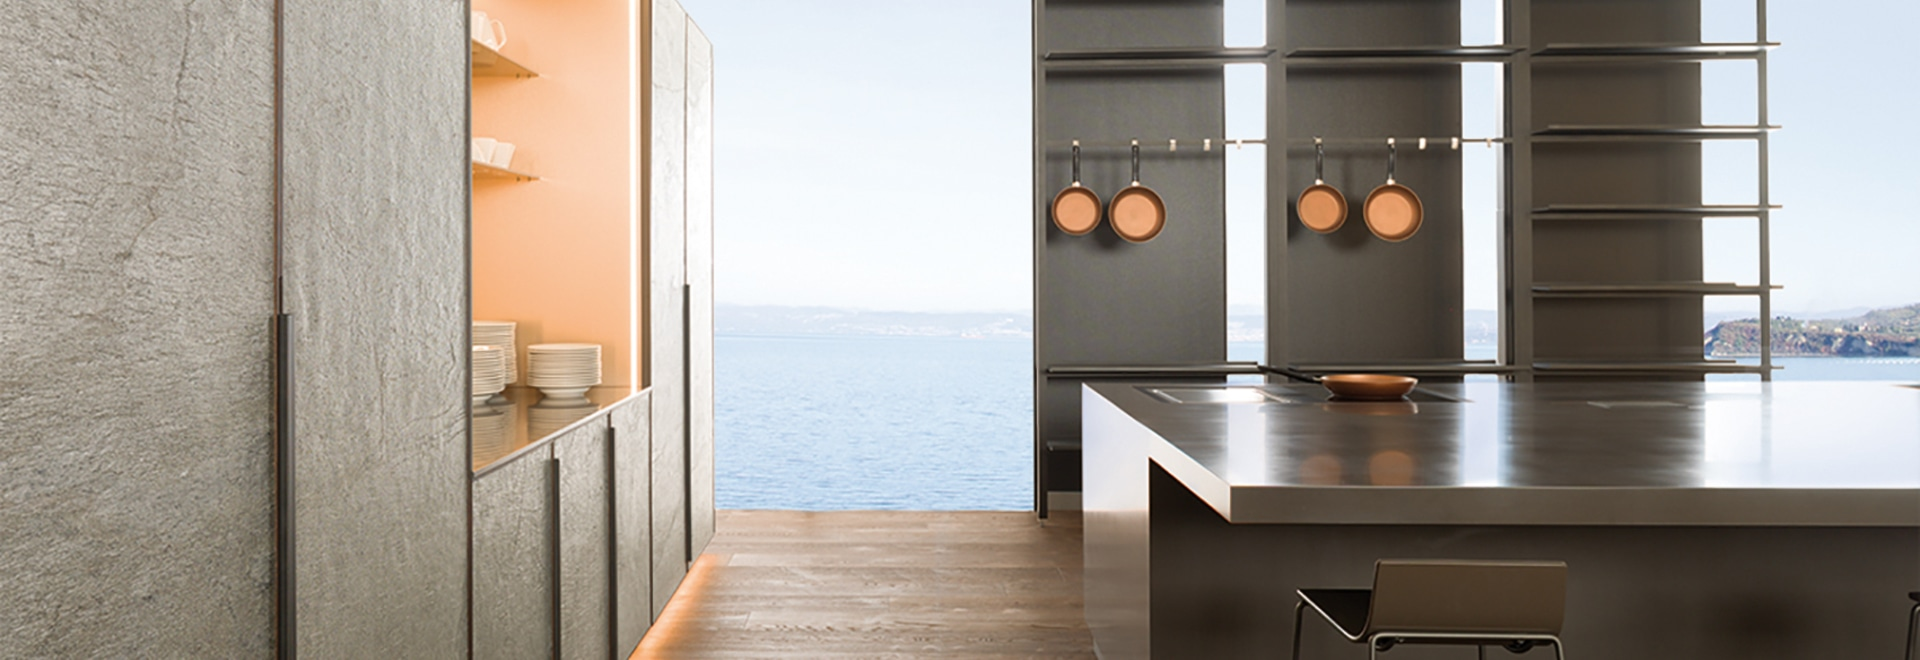 Luxury and Innovation in Kitchen Design